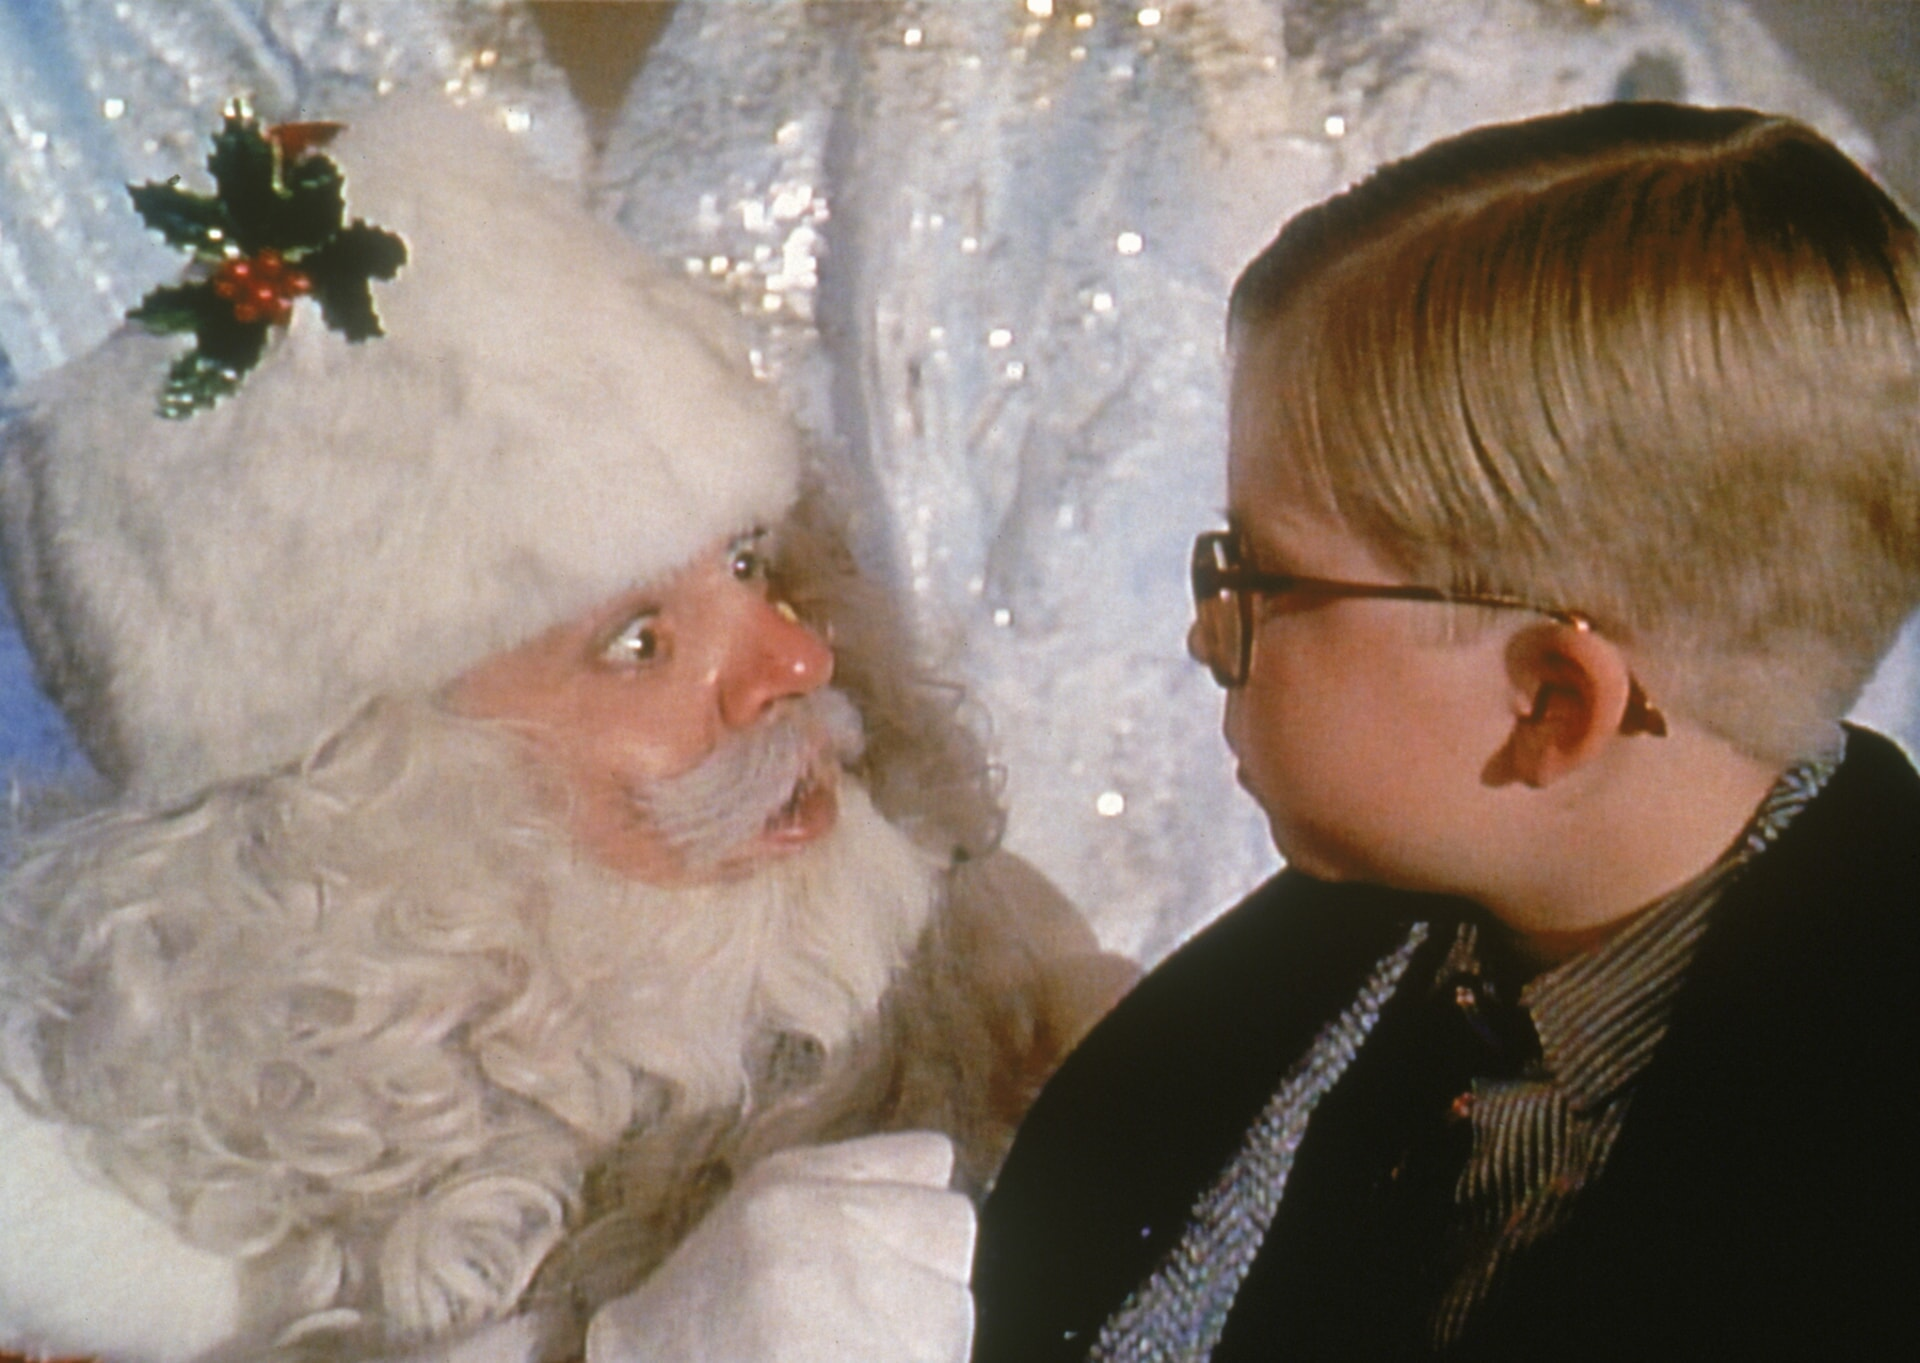 Santa and Ralphie staring at each other